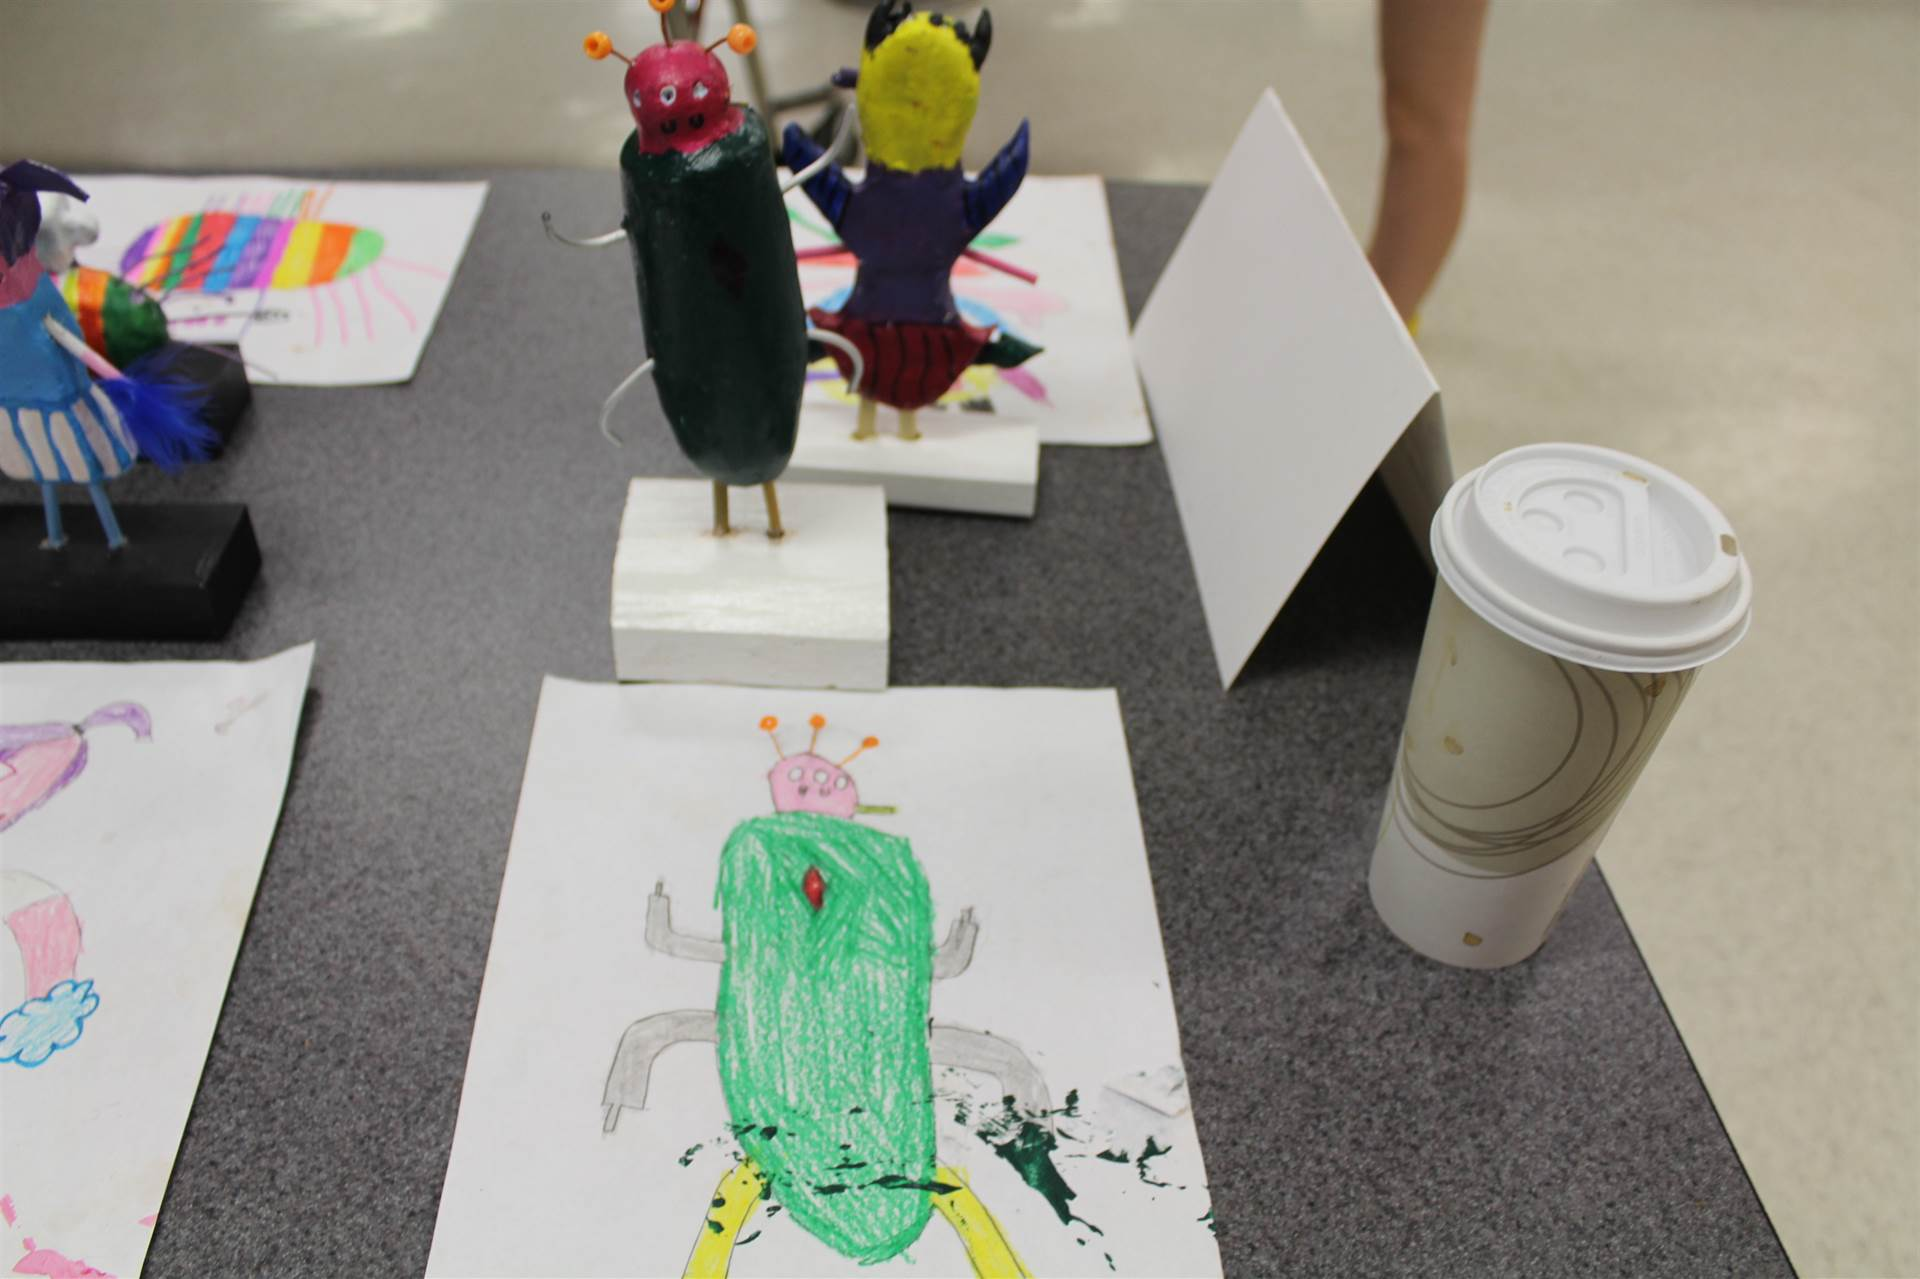 monster 3 d sculpture next to drawn picture 29